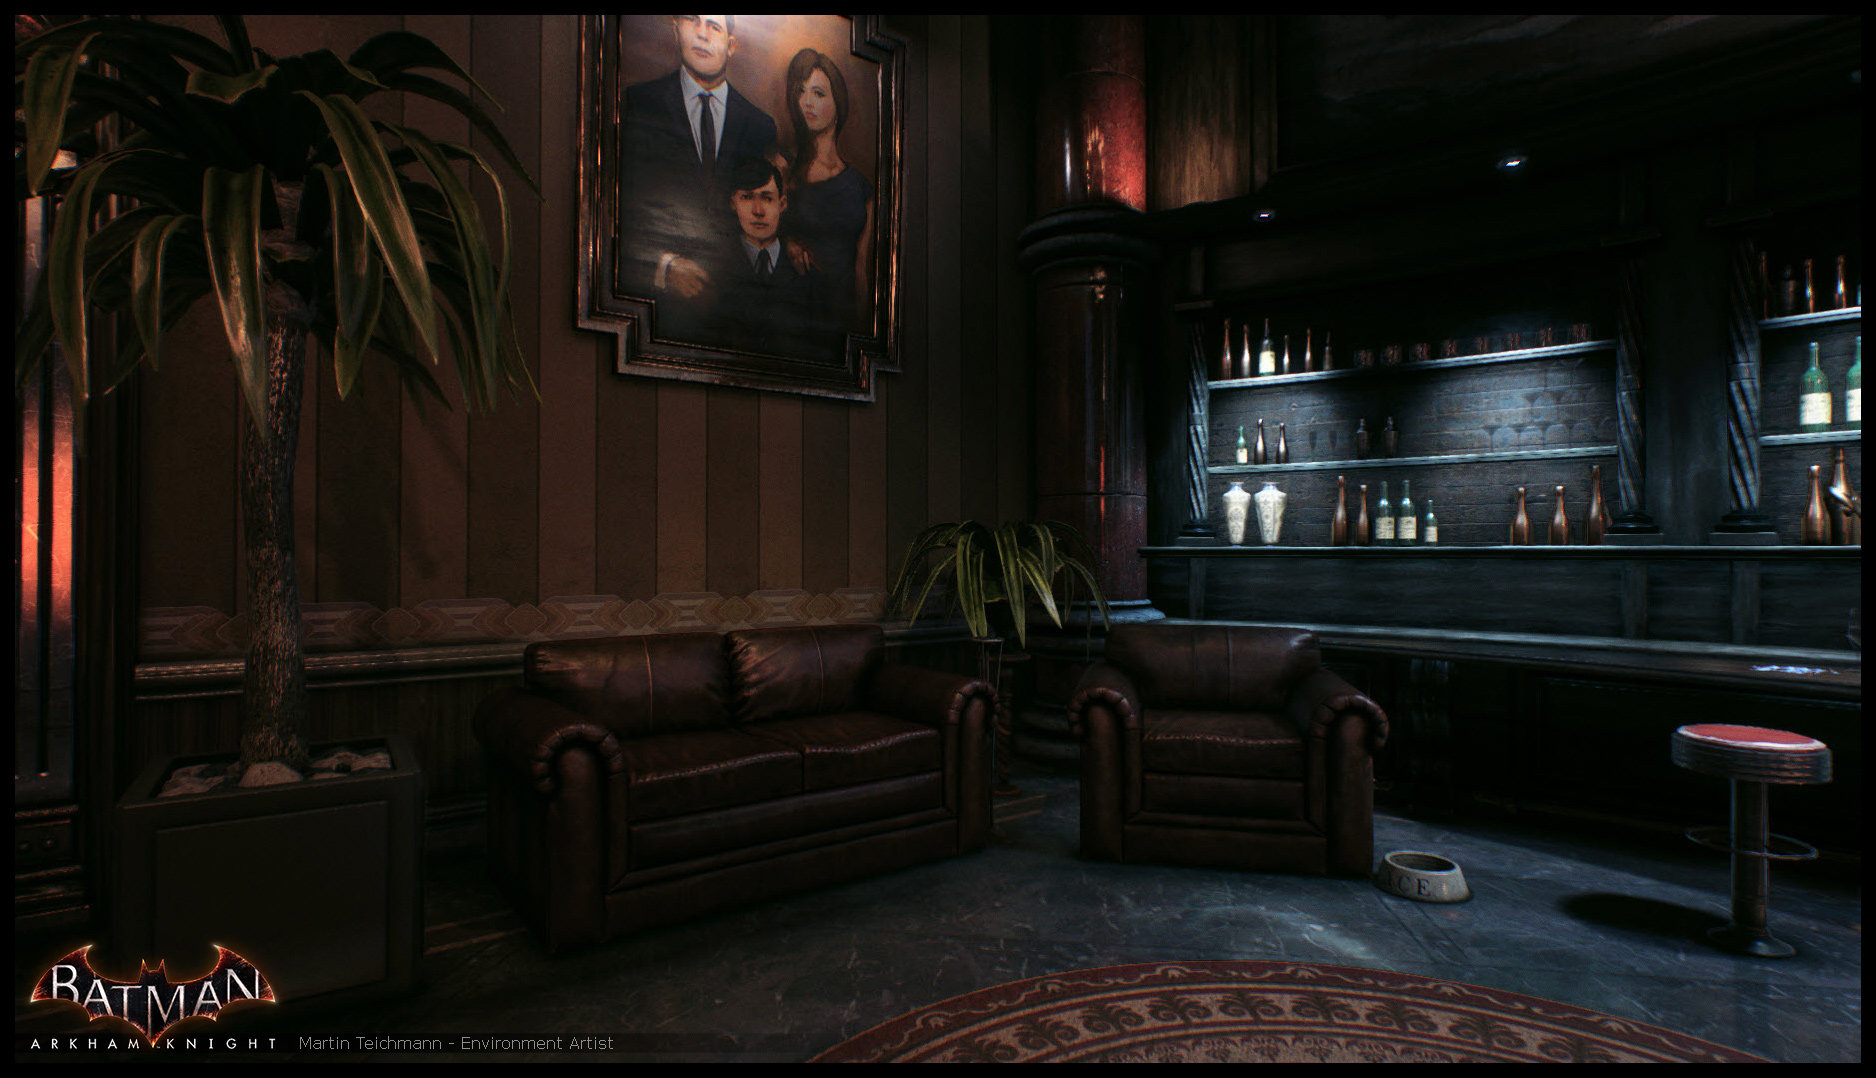 Martin teichmann arkham knight office 02